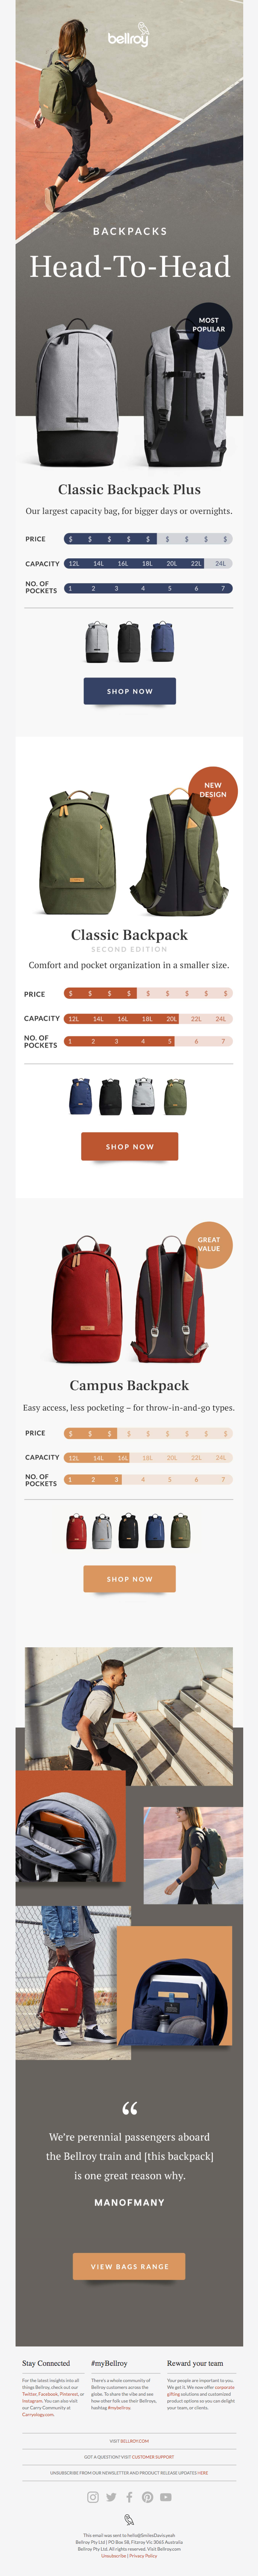 Three classic backpacks, head to head.